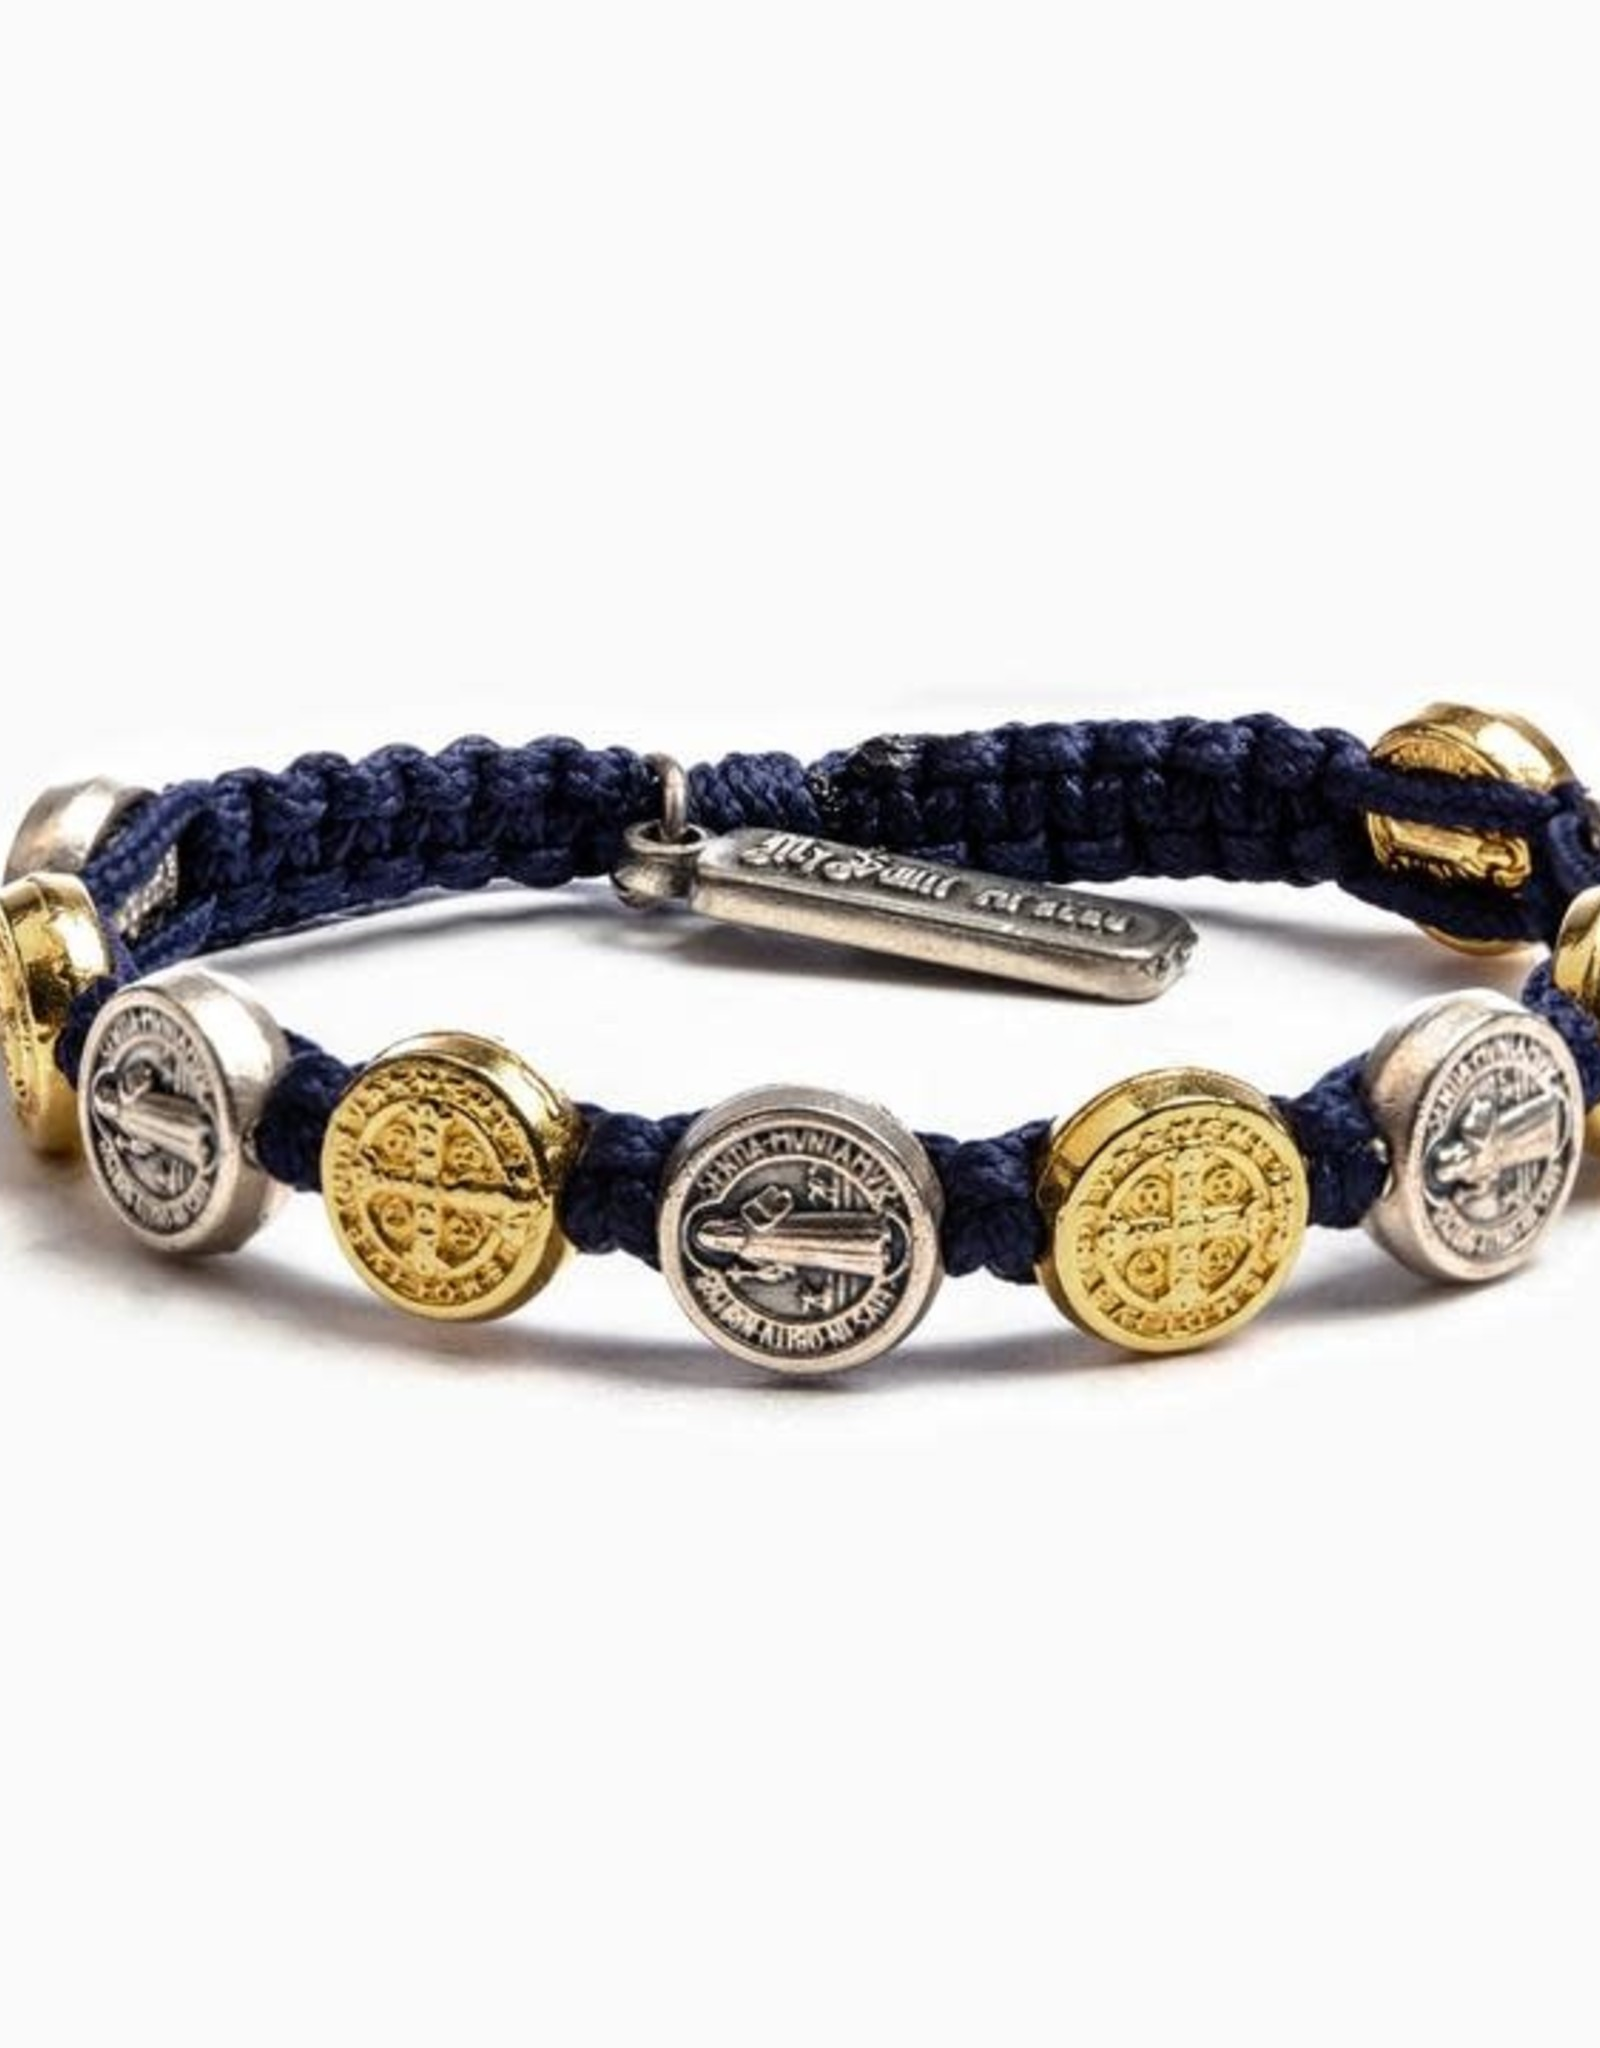 Blessing Bracelet Mixed Medals Mixed/Navy